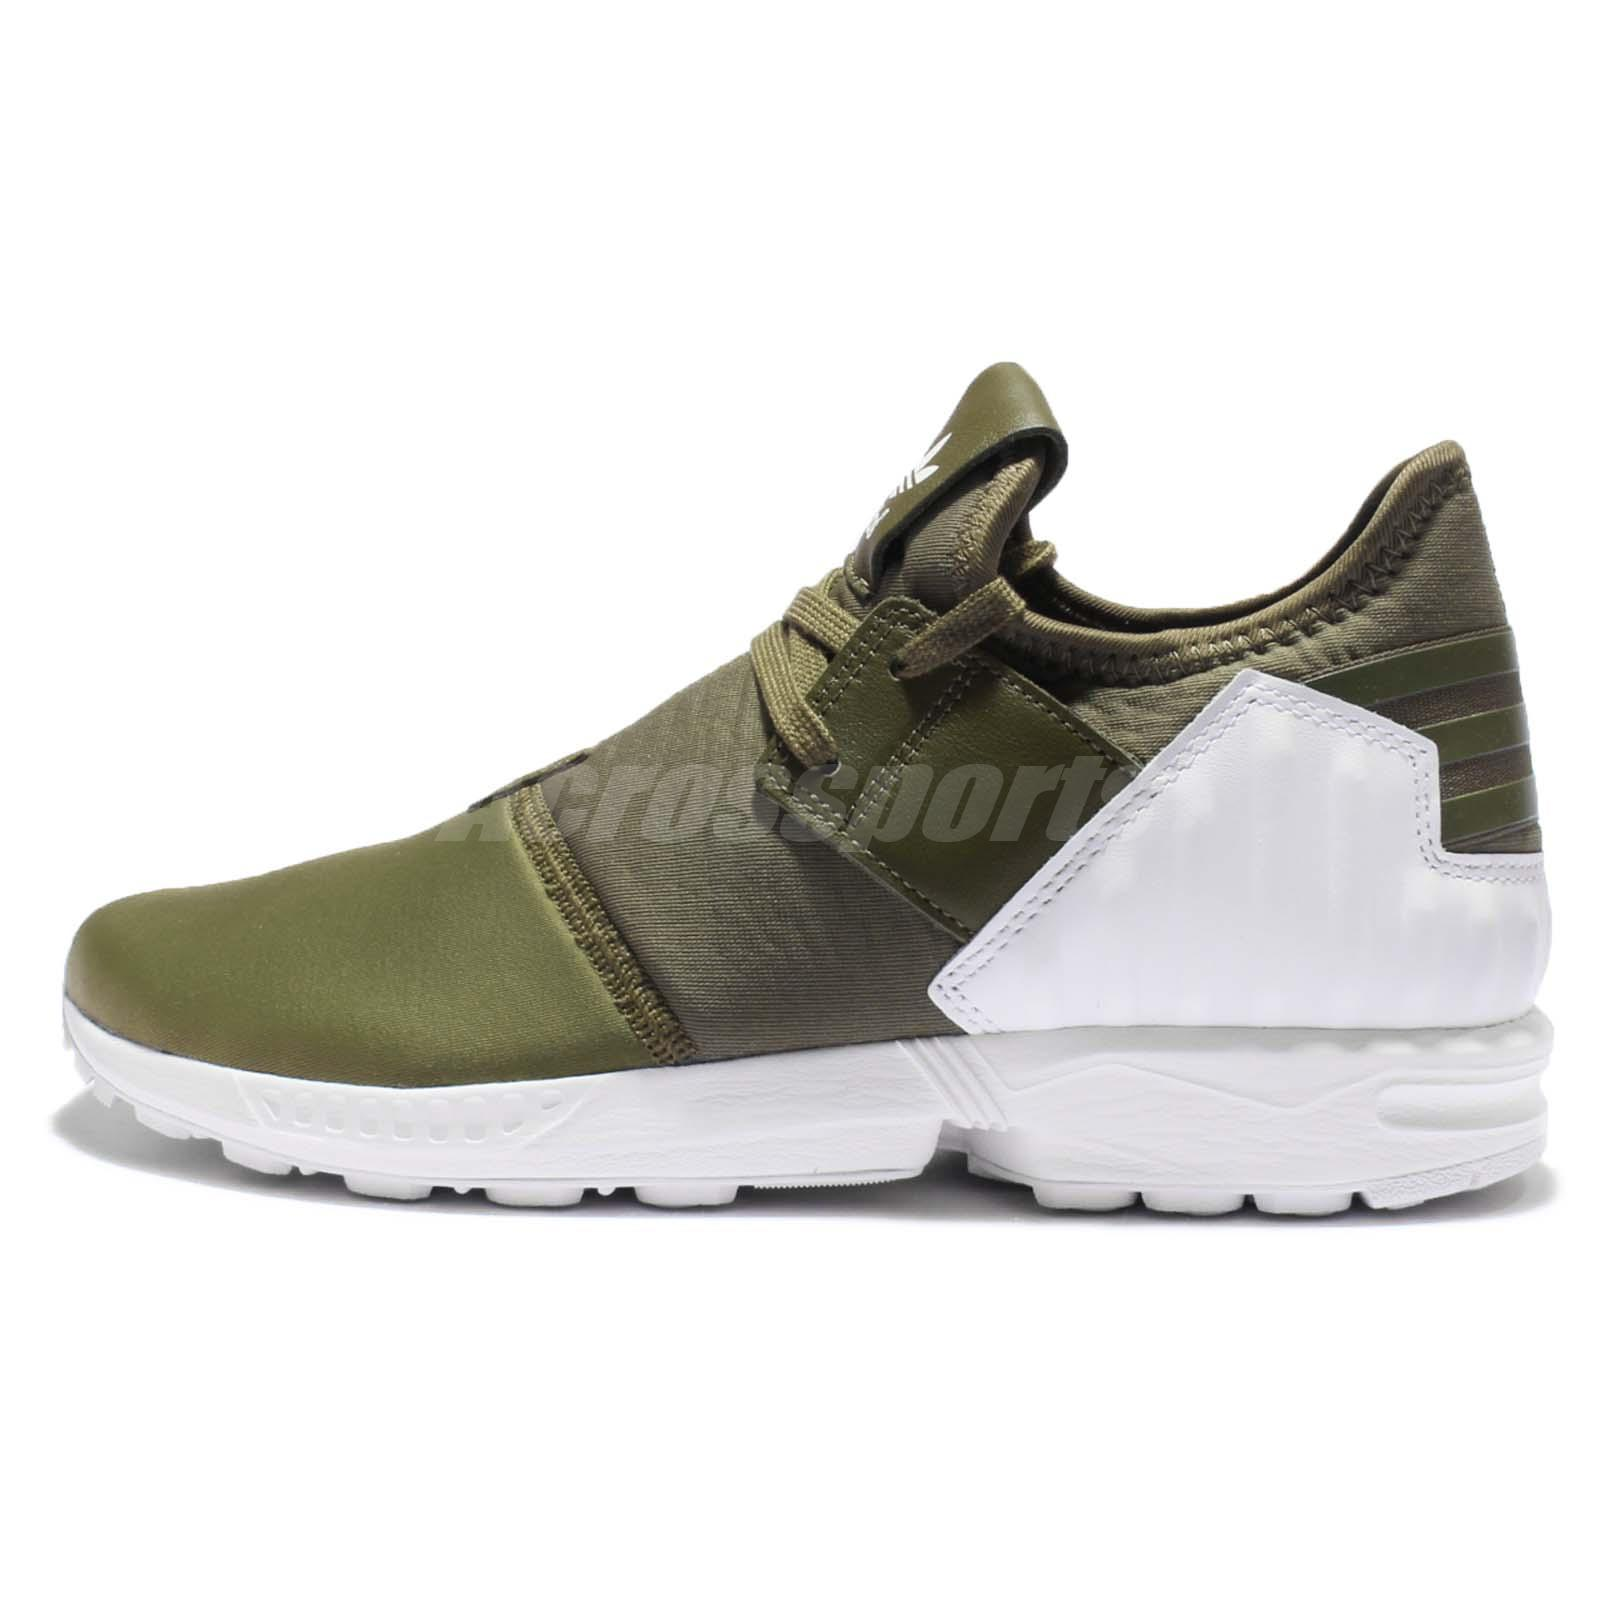 adidas Originals ZX Flux Plus Olive Green Mens Trainers Bootee Style S79062